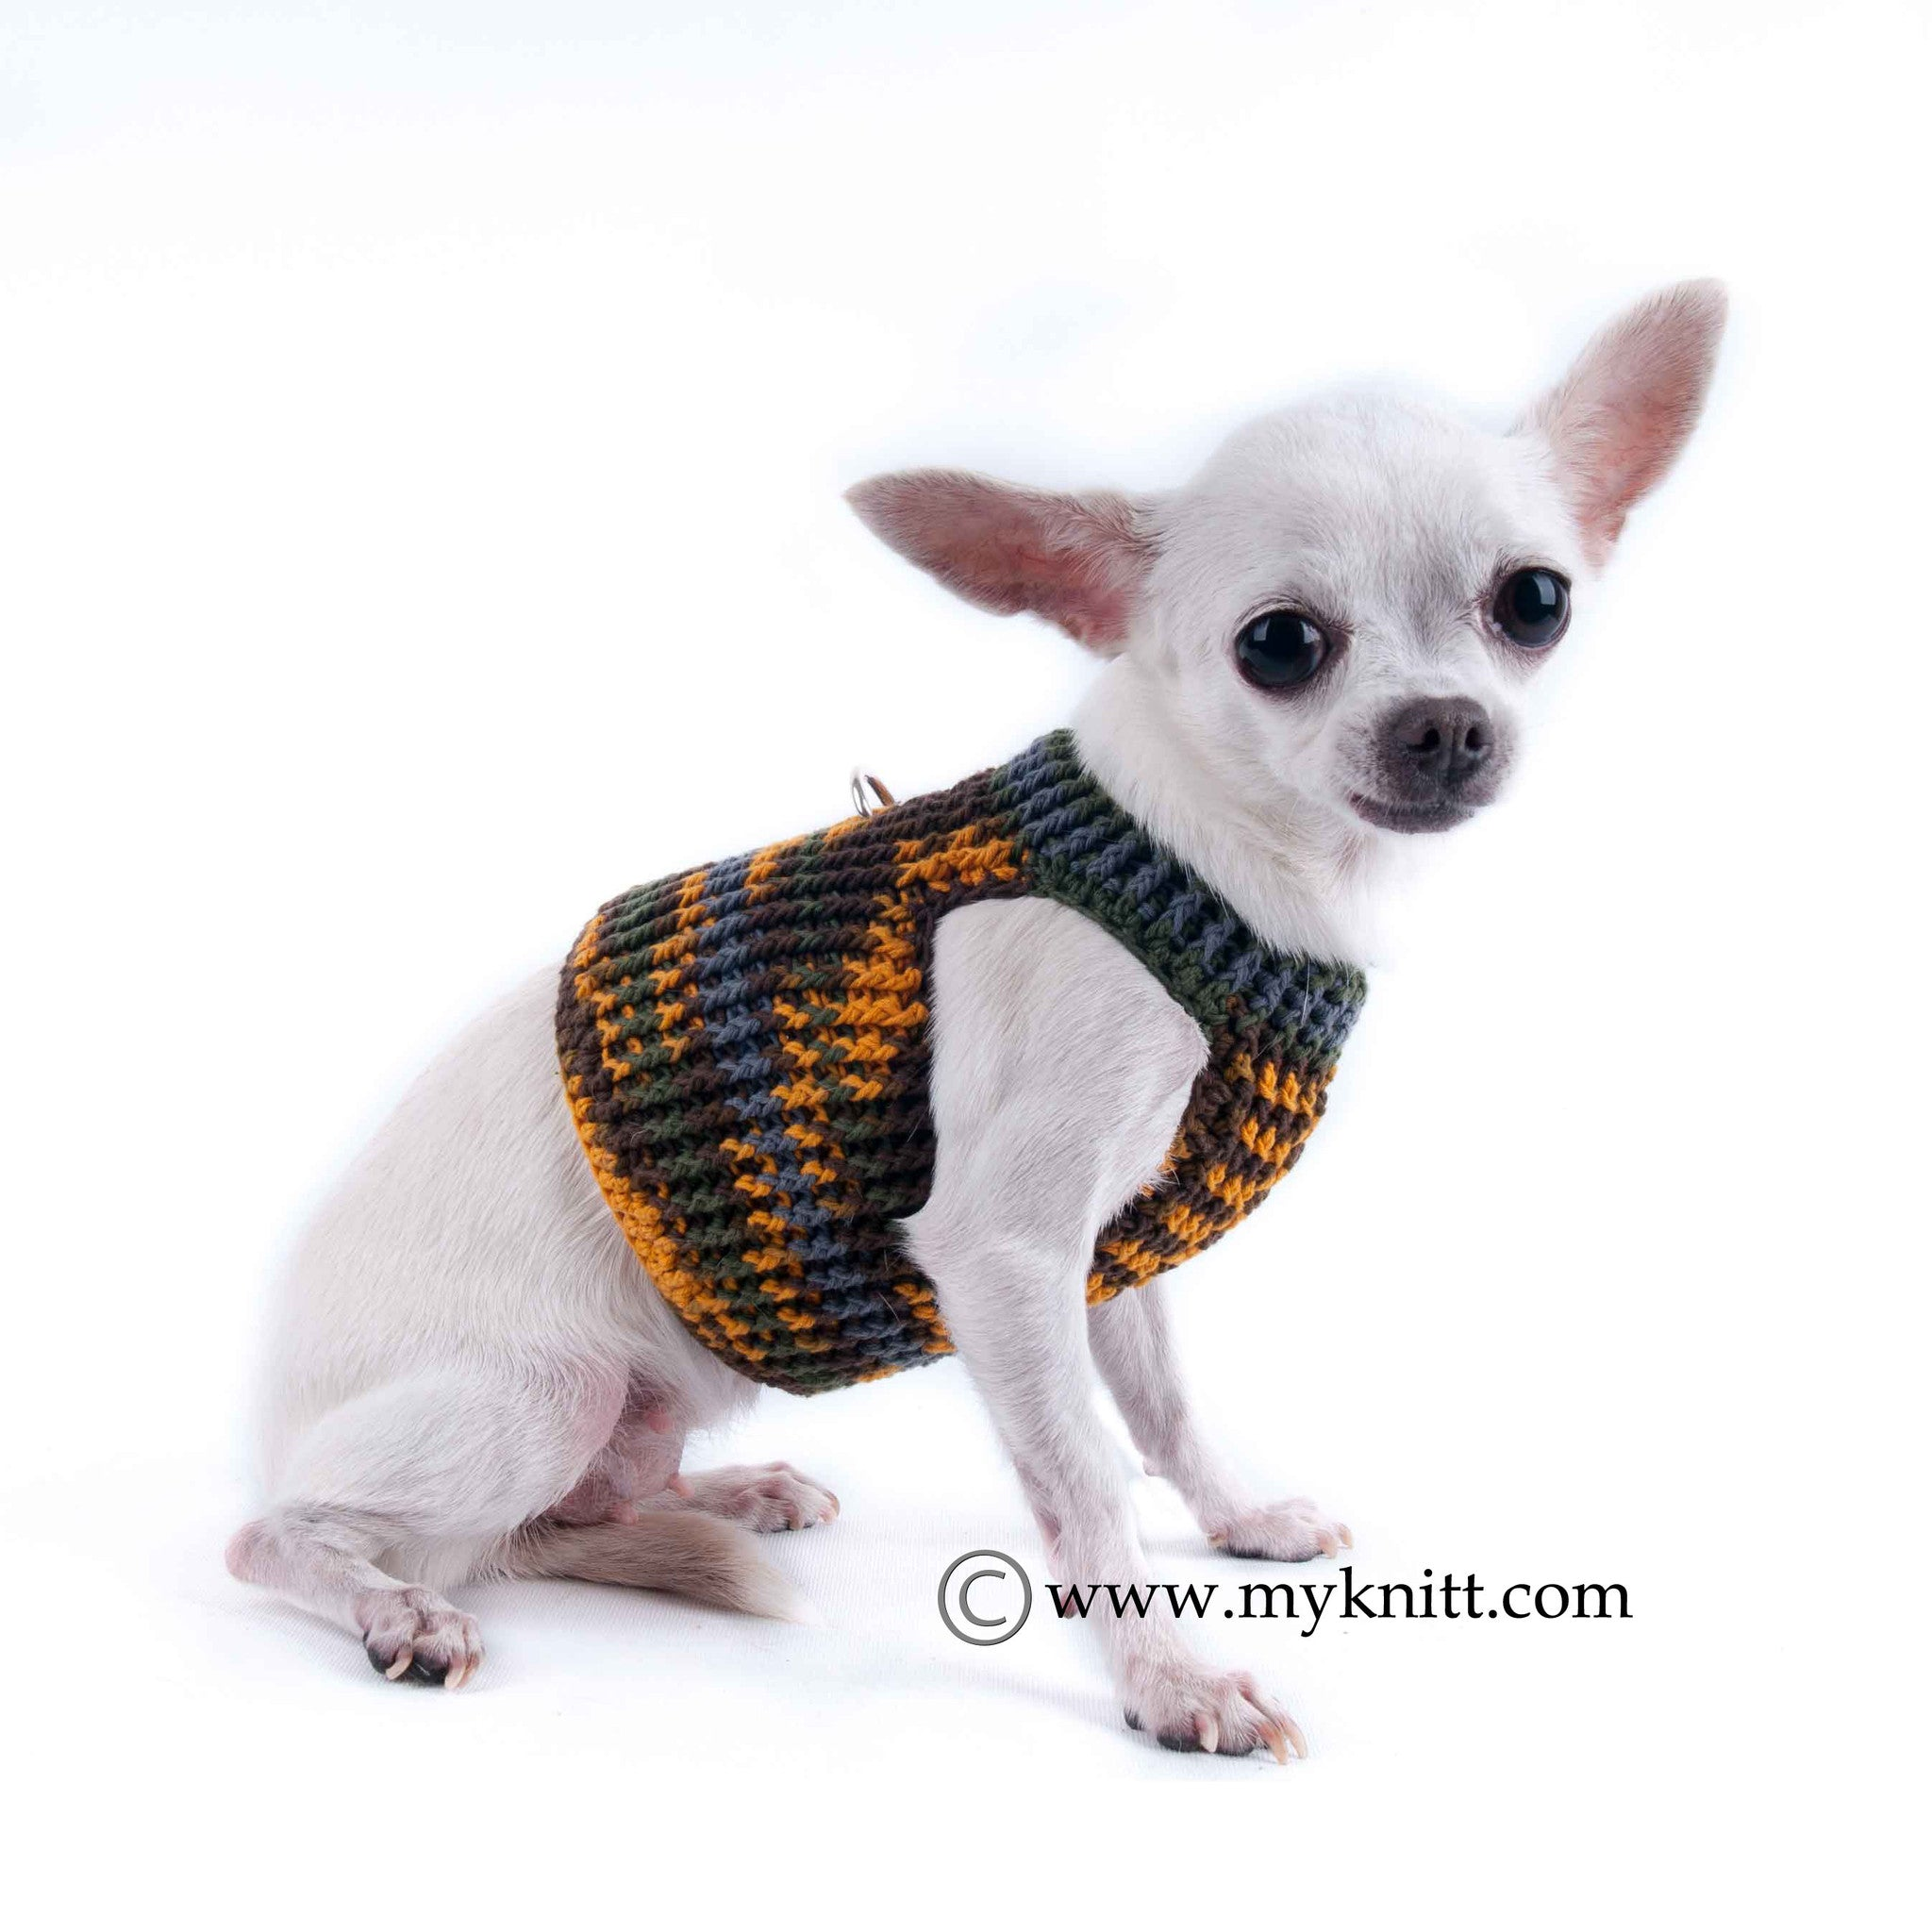 DH3_1?v=1458269081 camo dog clothes with ring d handmade crochet pet harness dh3 myknitt